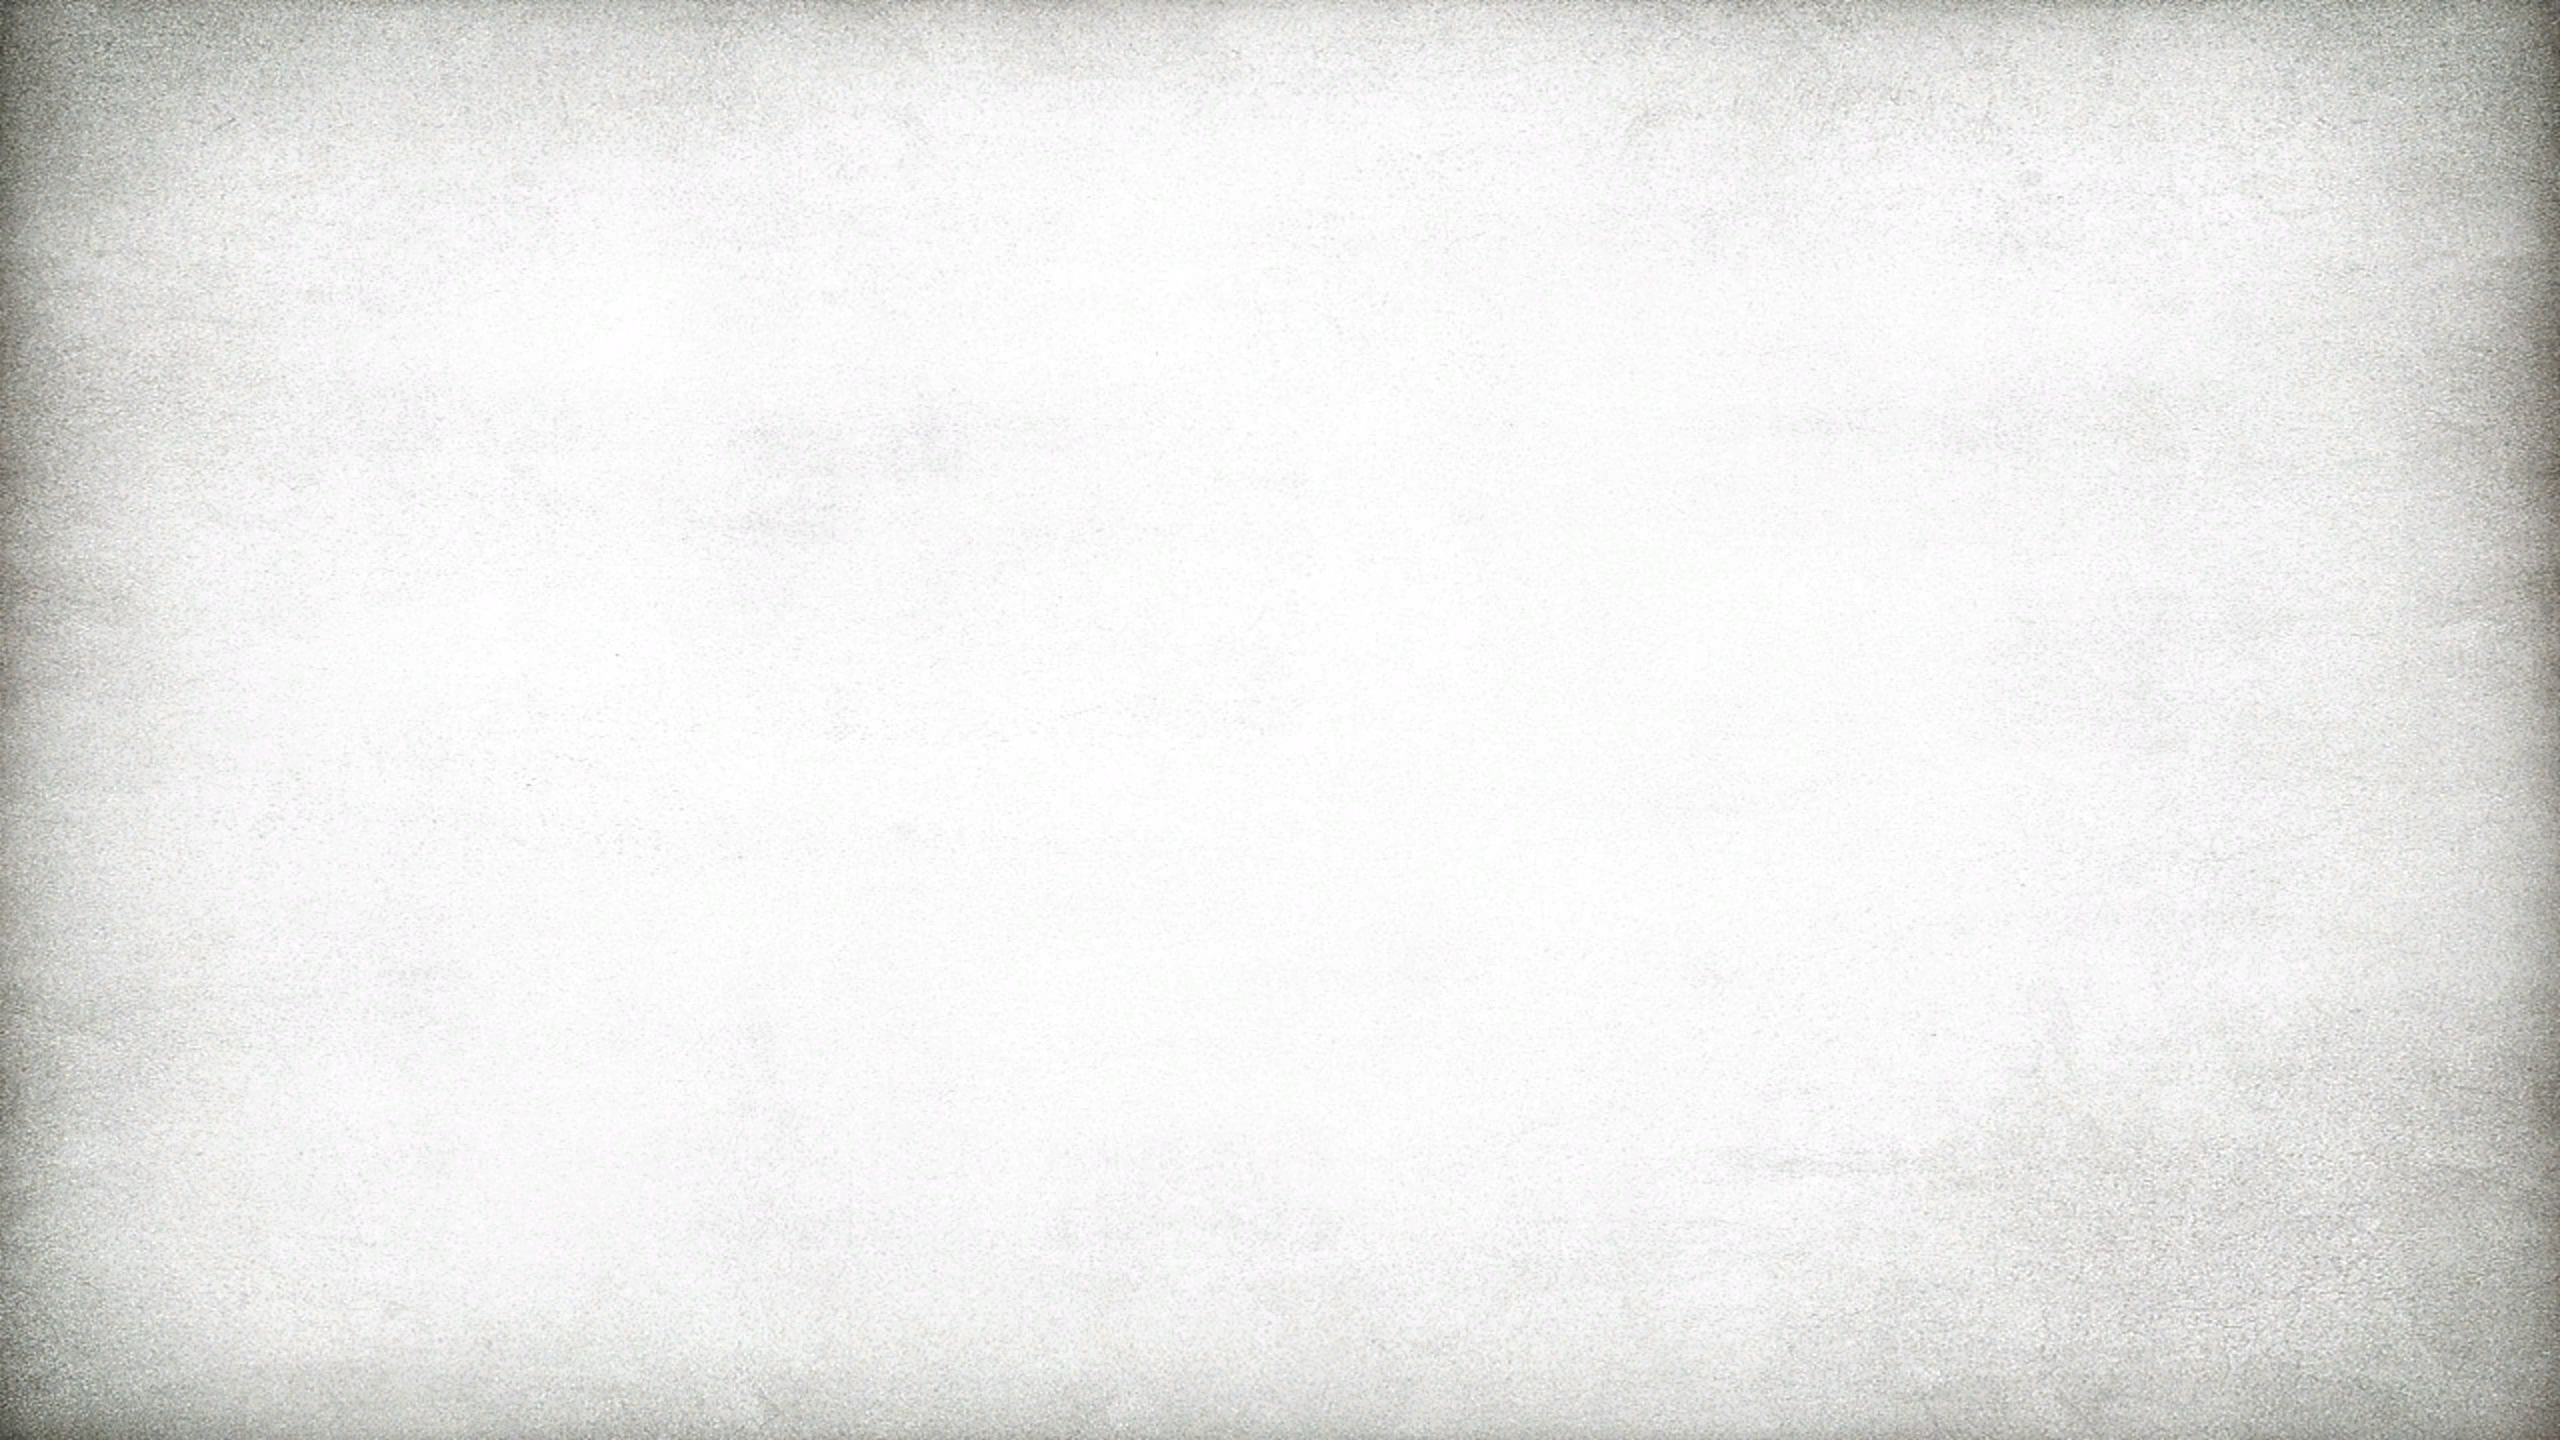 Bfbc2 Clean Background 1440 Png 2560 1440